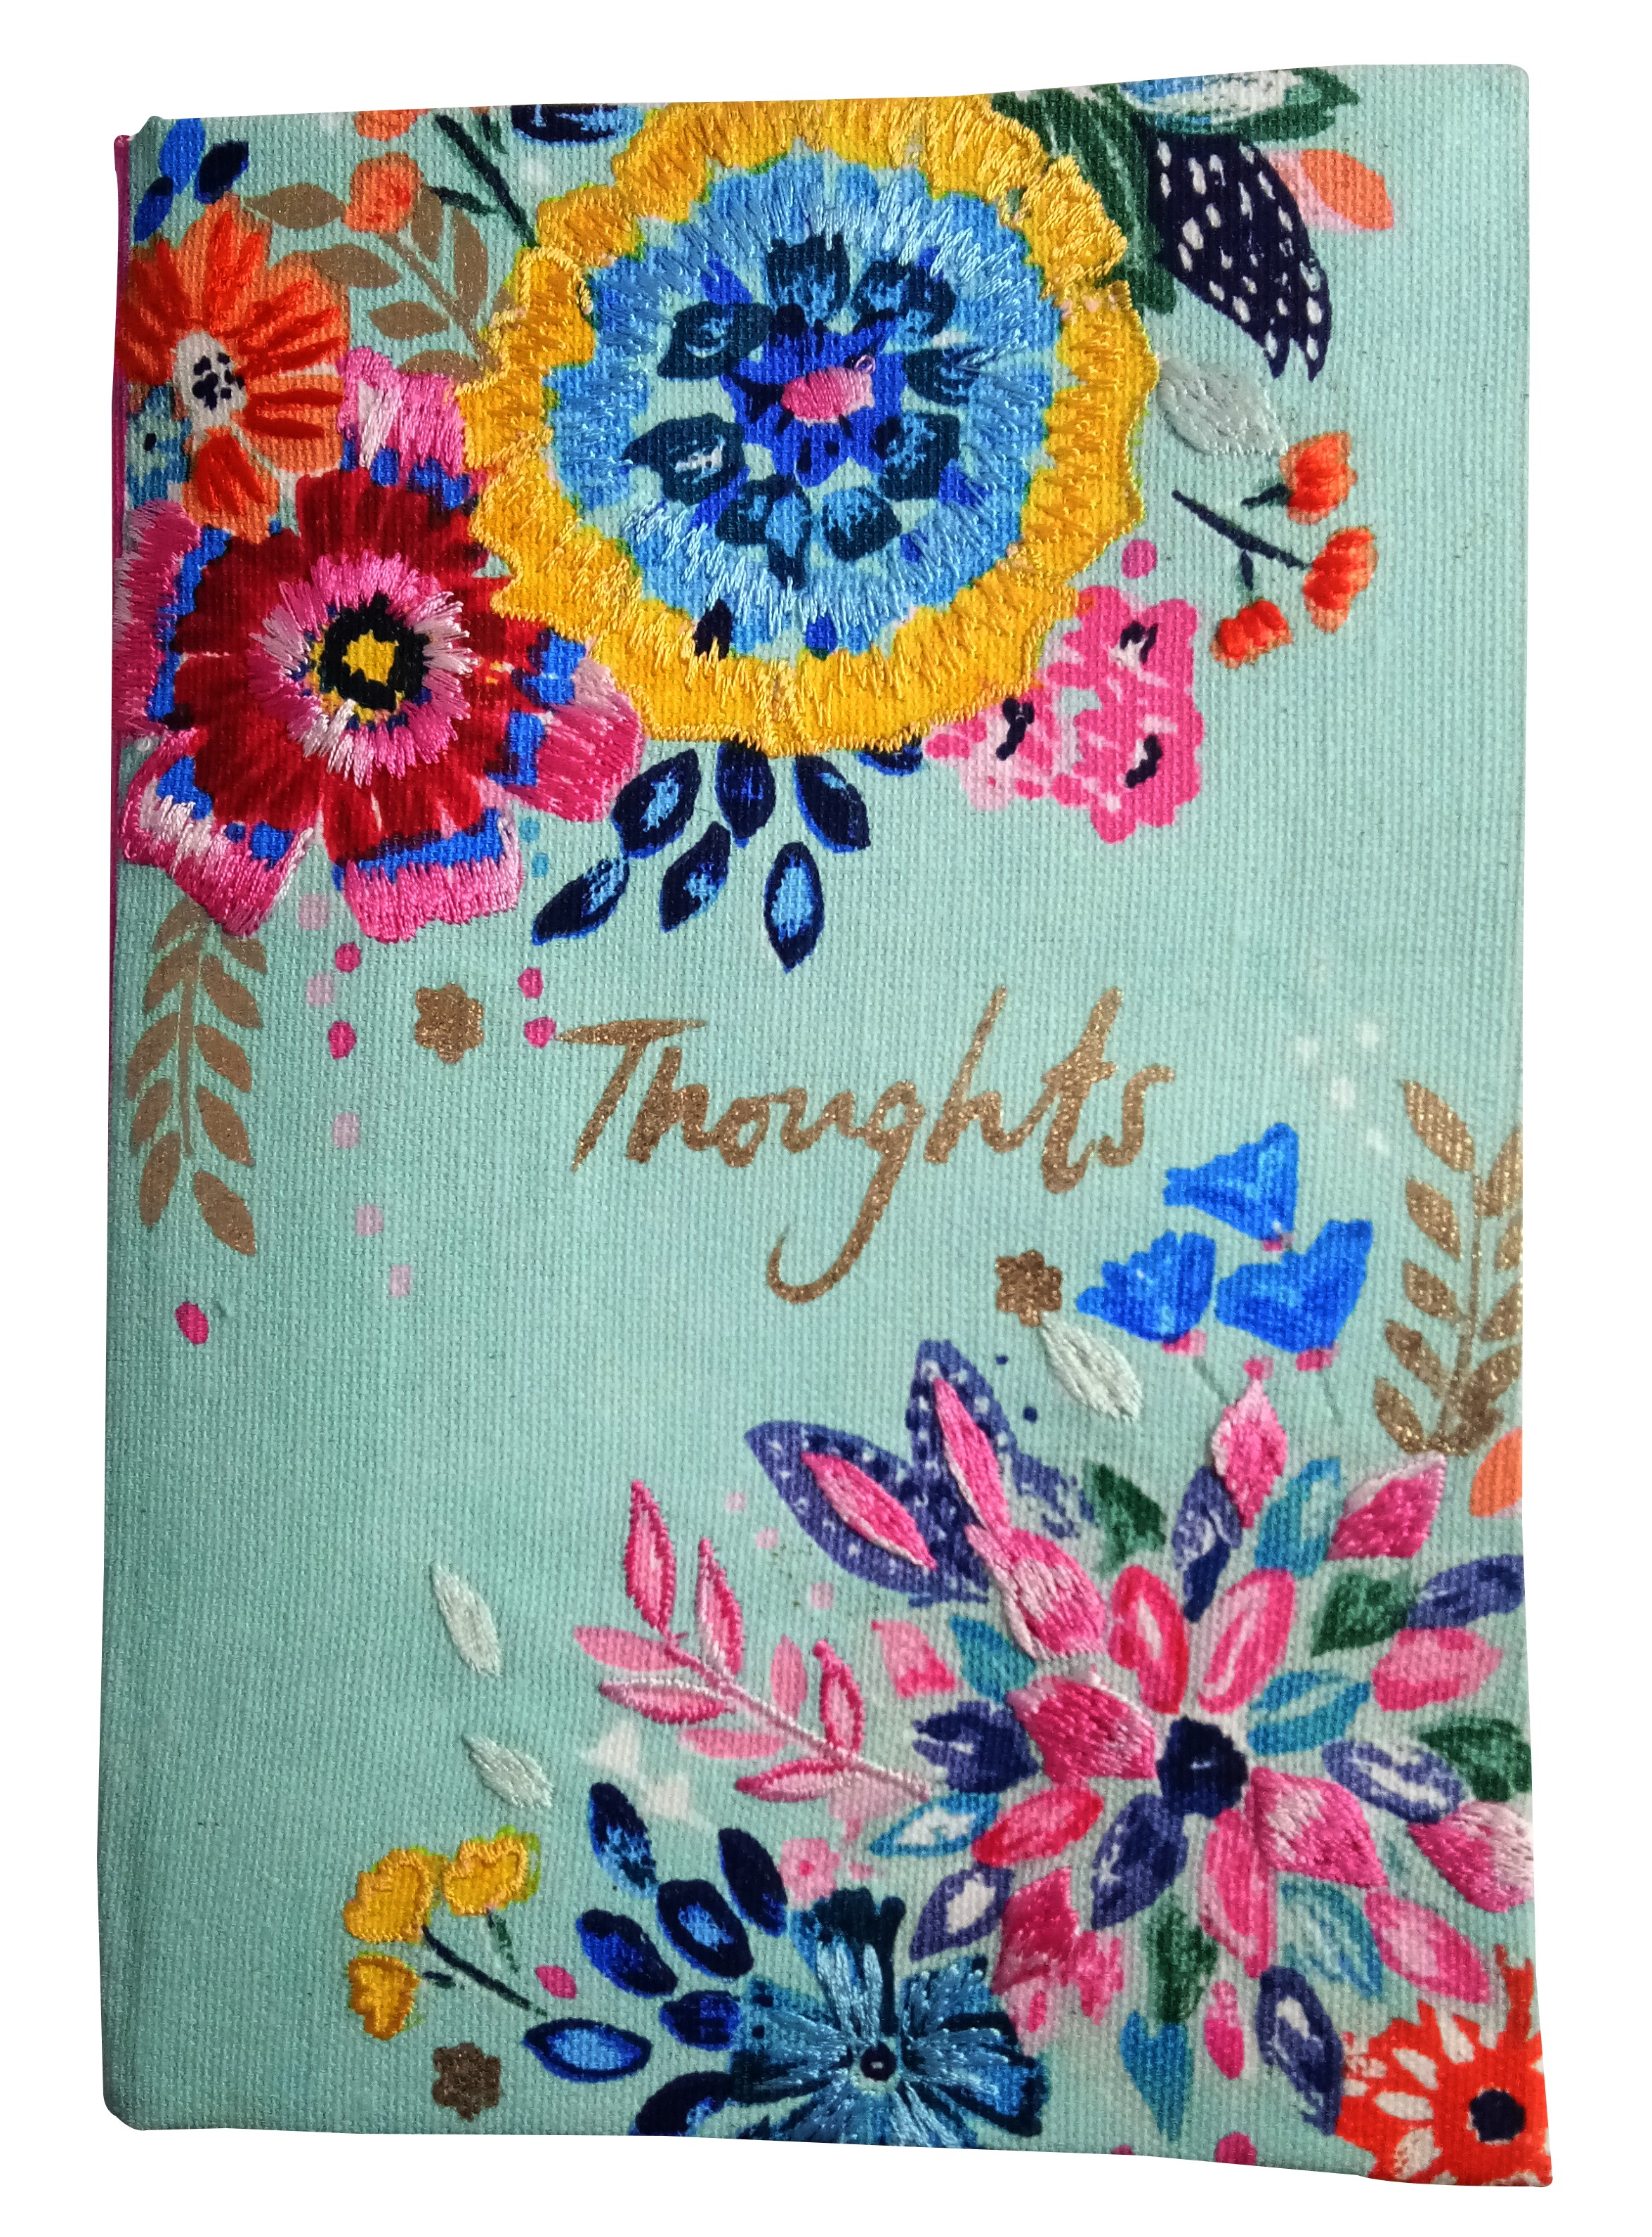 Handmade Cloth Printed Diary with Sequin Work by Slum people